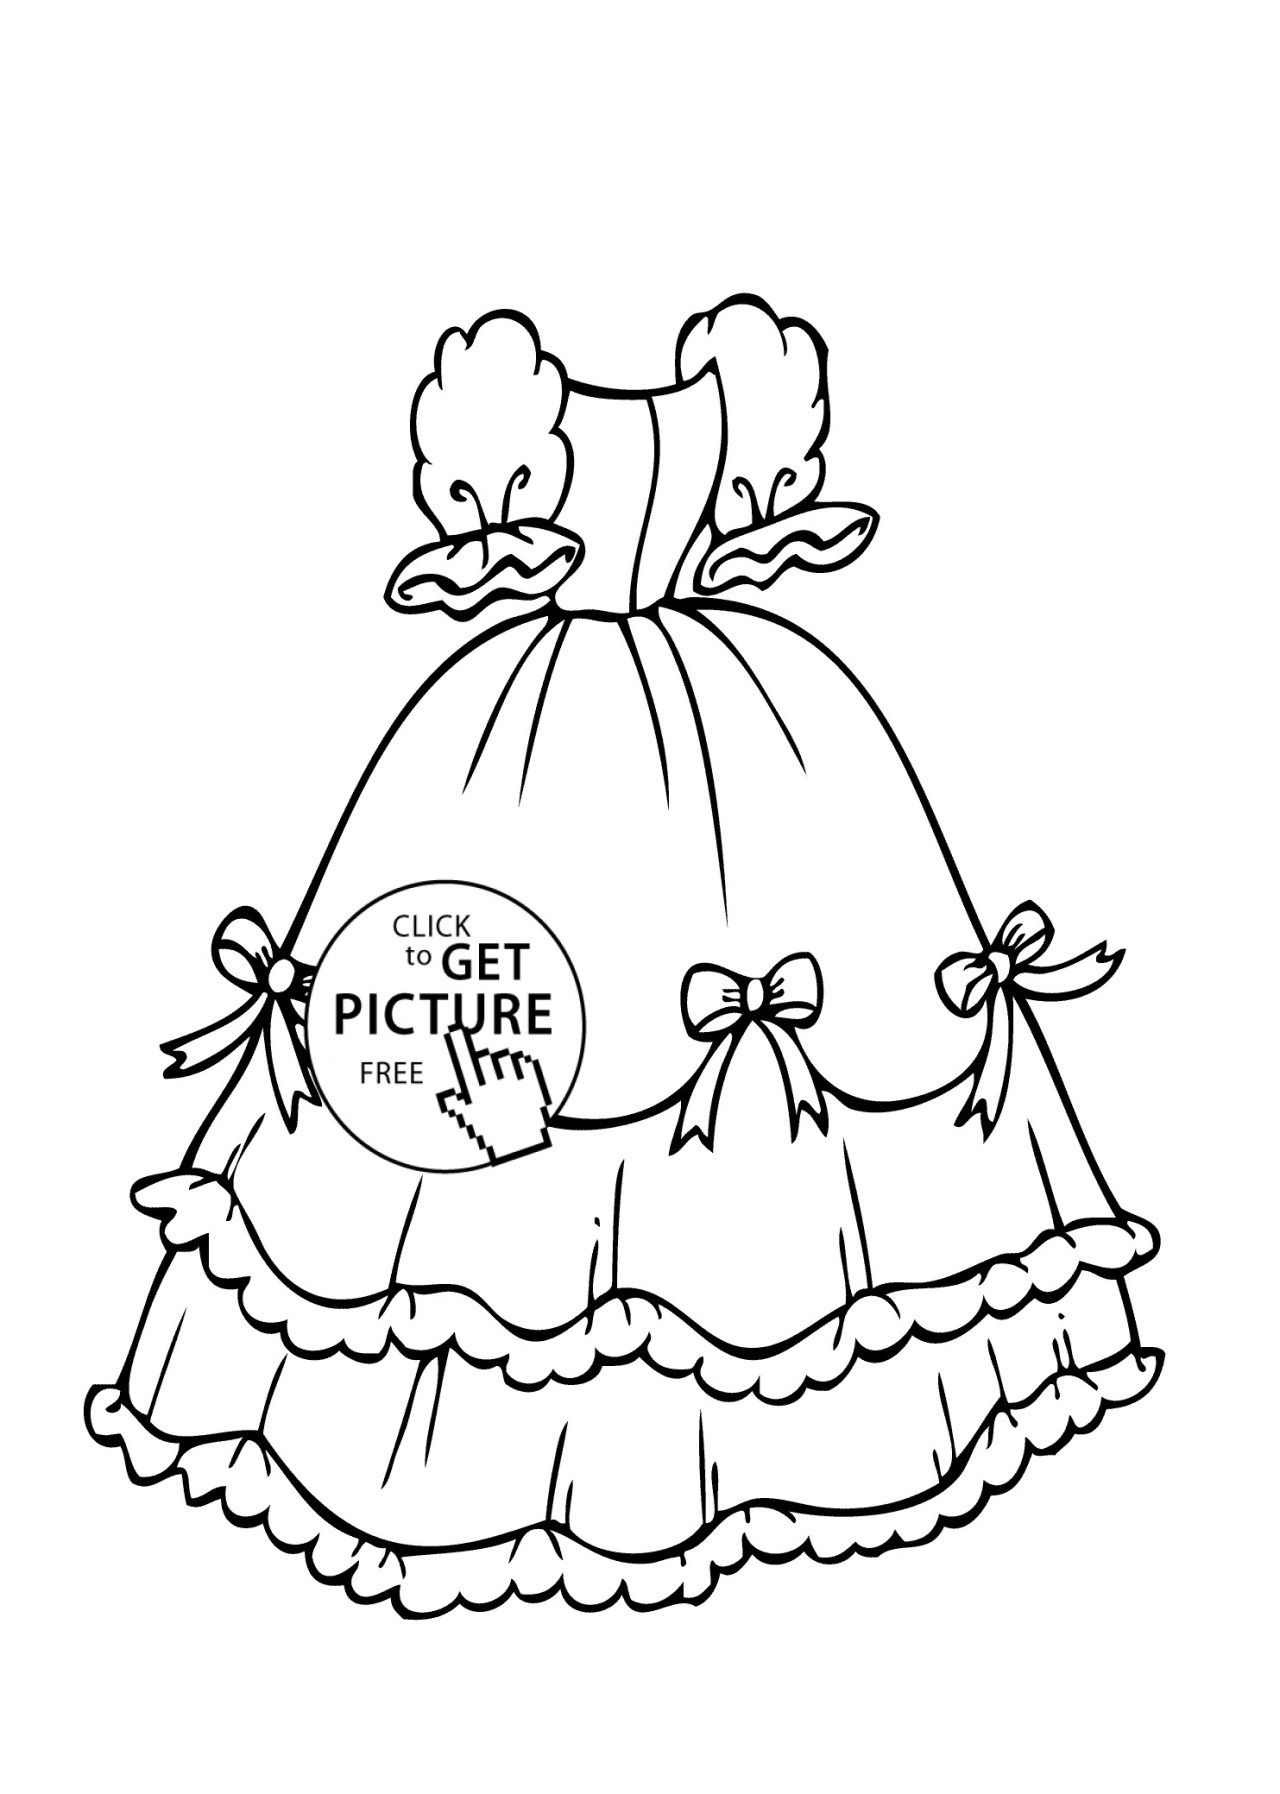 25 Creative Picture Of Dress Coloring Pages Entitlementtrap Com Coloring Pages For Girls Free Coloring Pages Coloring Pages